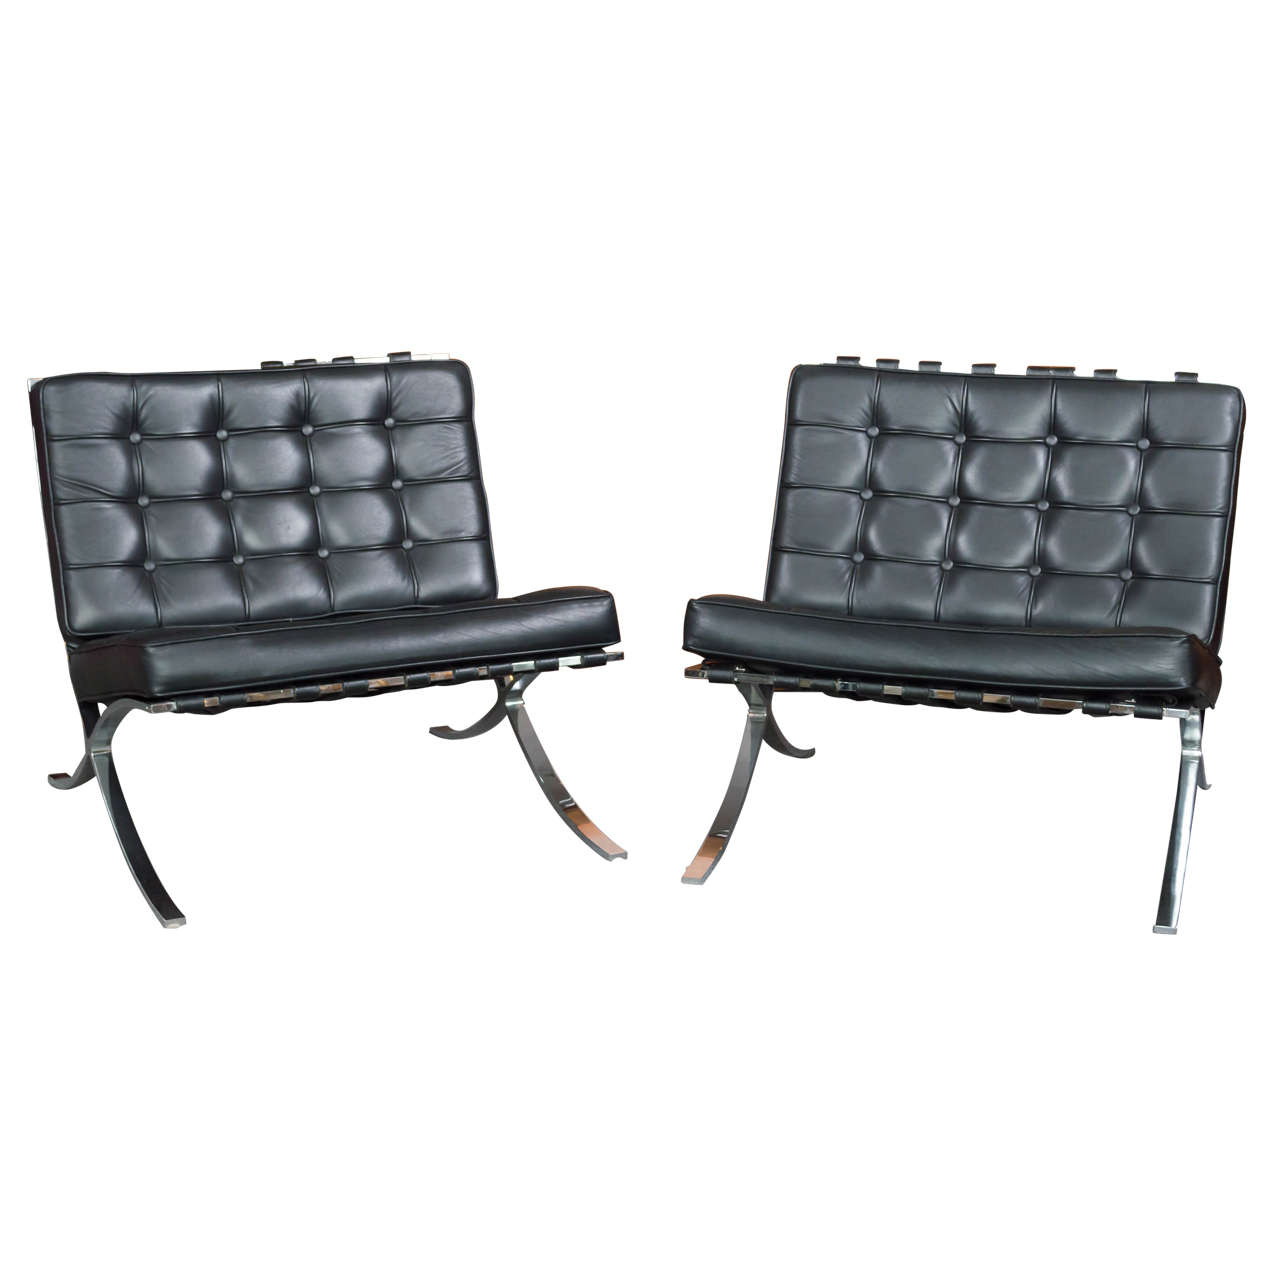 Vintage Pair Of Mies Van Der Rohe Barcelona Style Chairs **Saturday Sale**